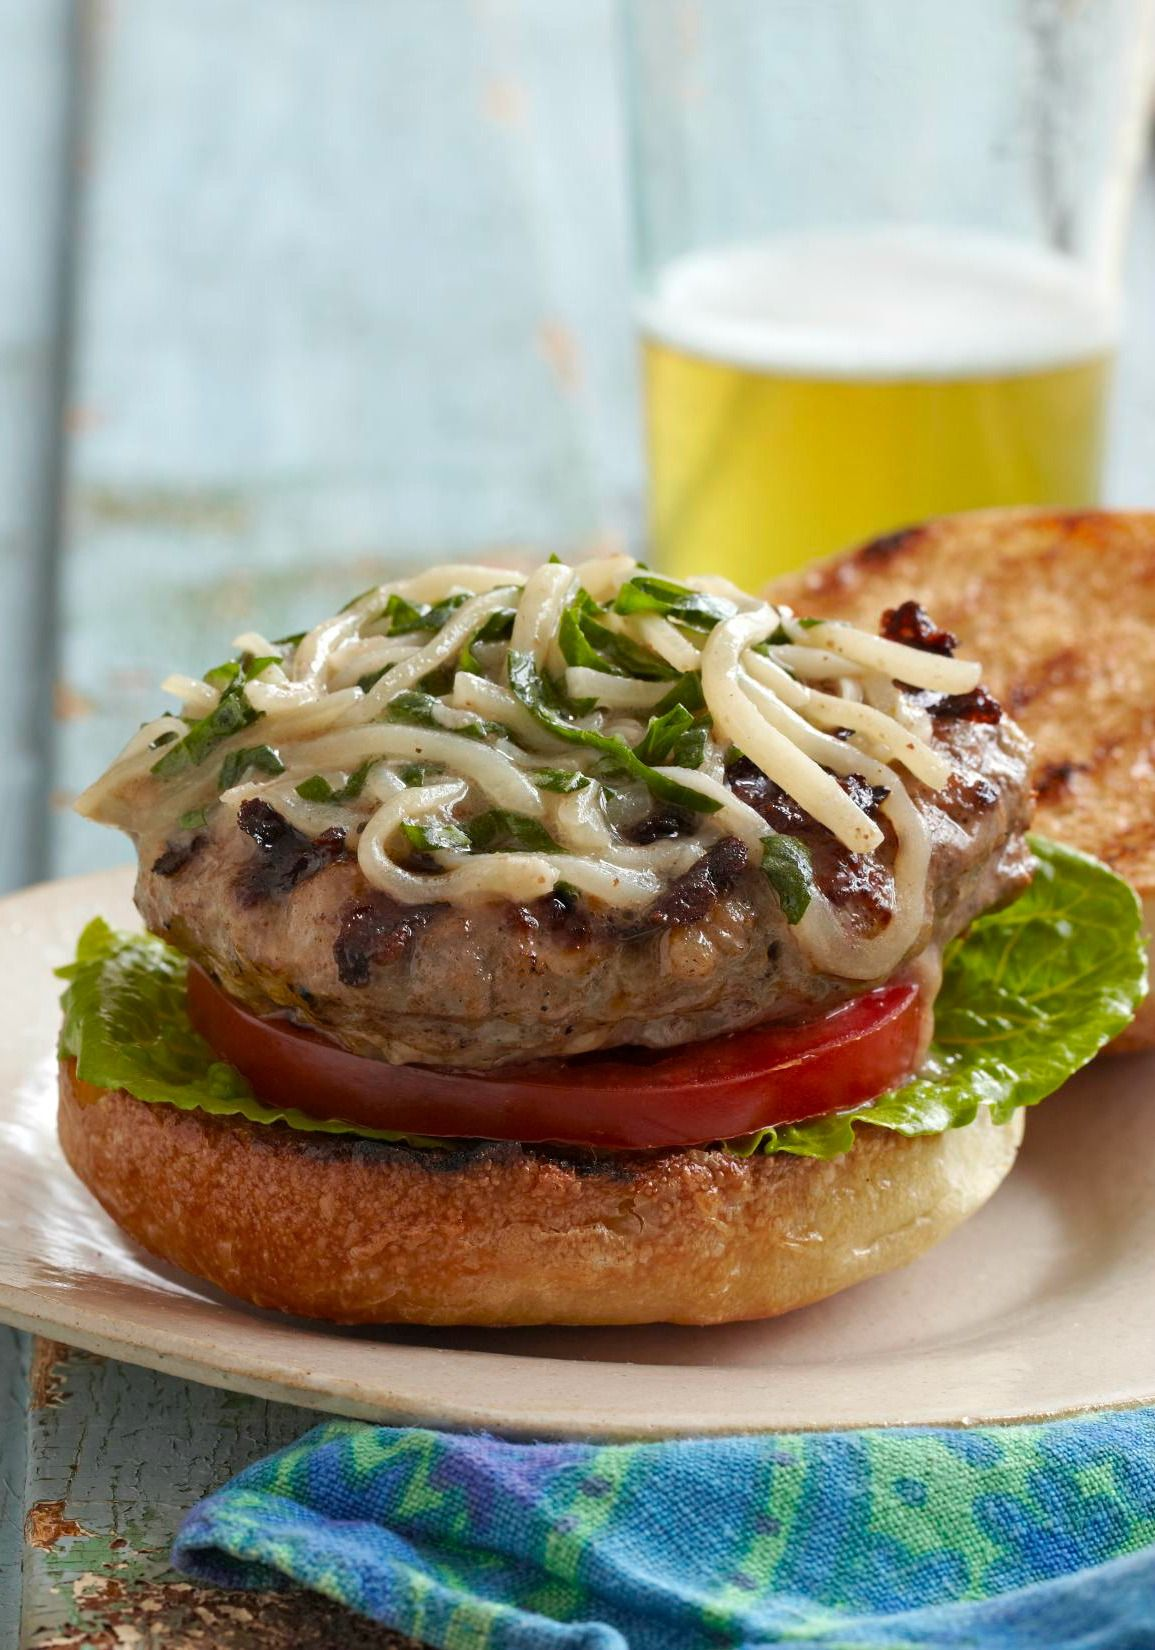 Italian Sausage Burgers Italian Sausage And Ground Beef Are Combined With An Egg And A Blend